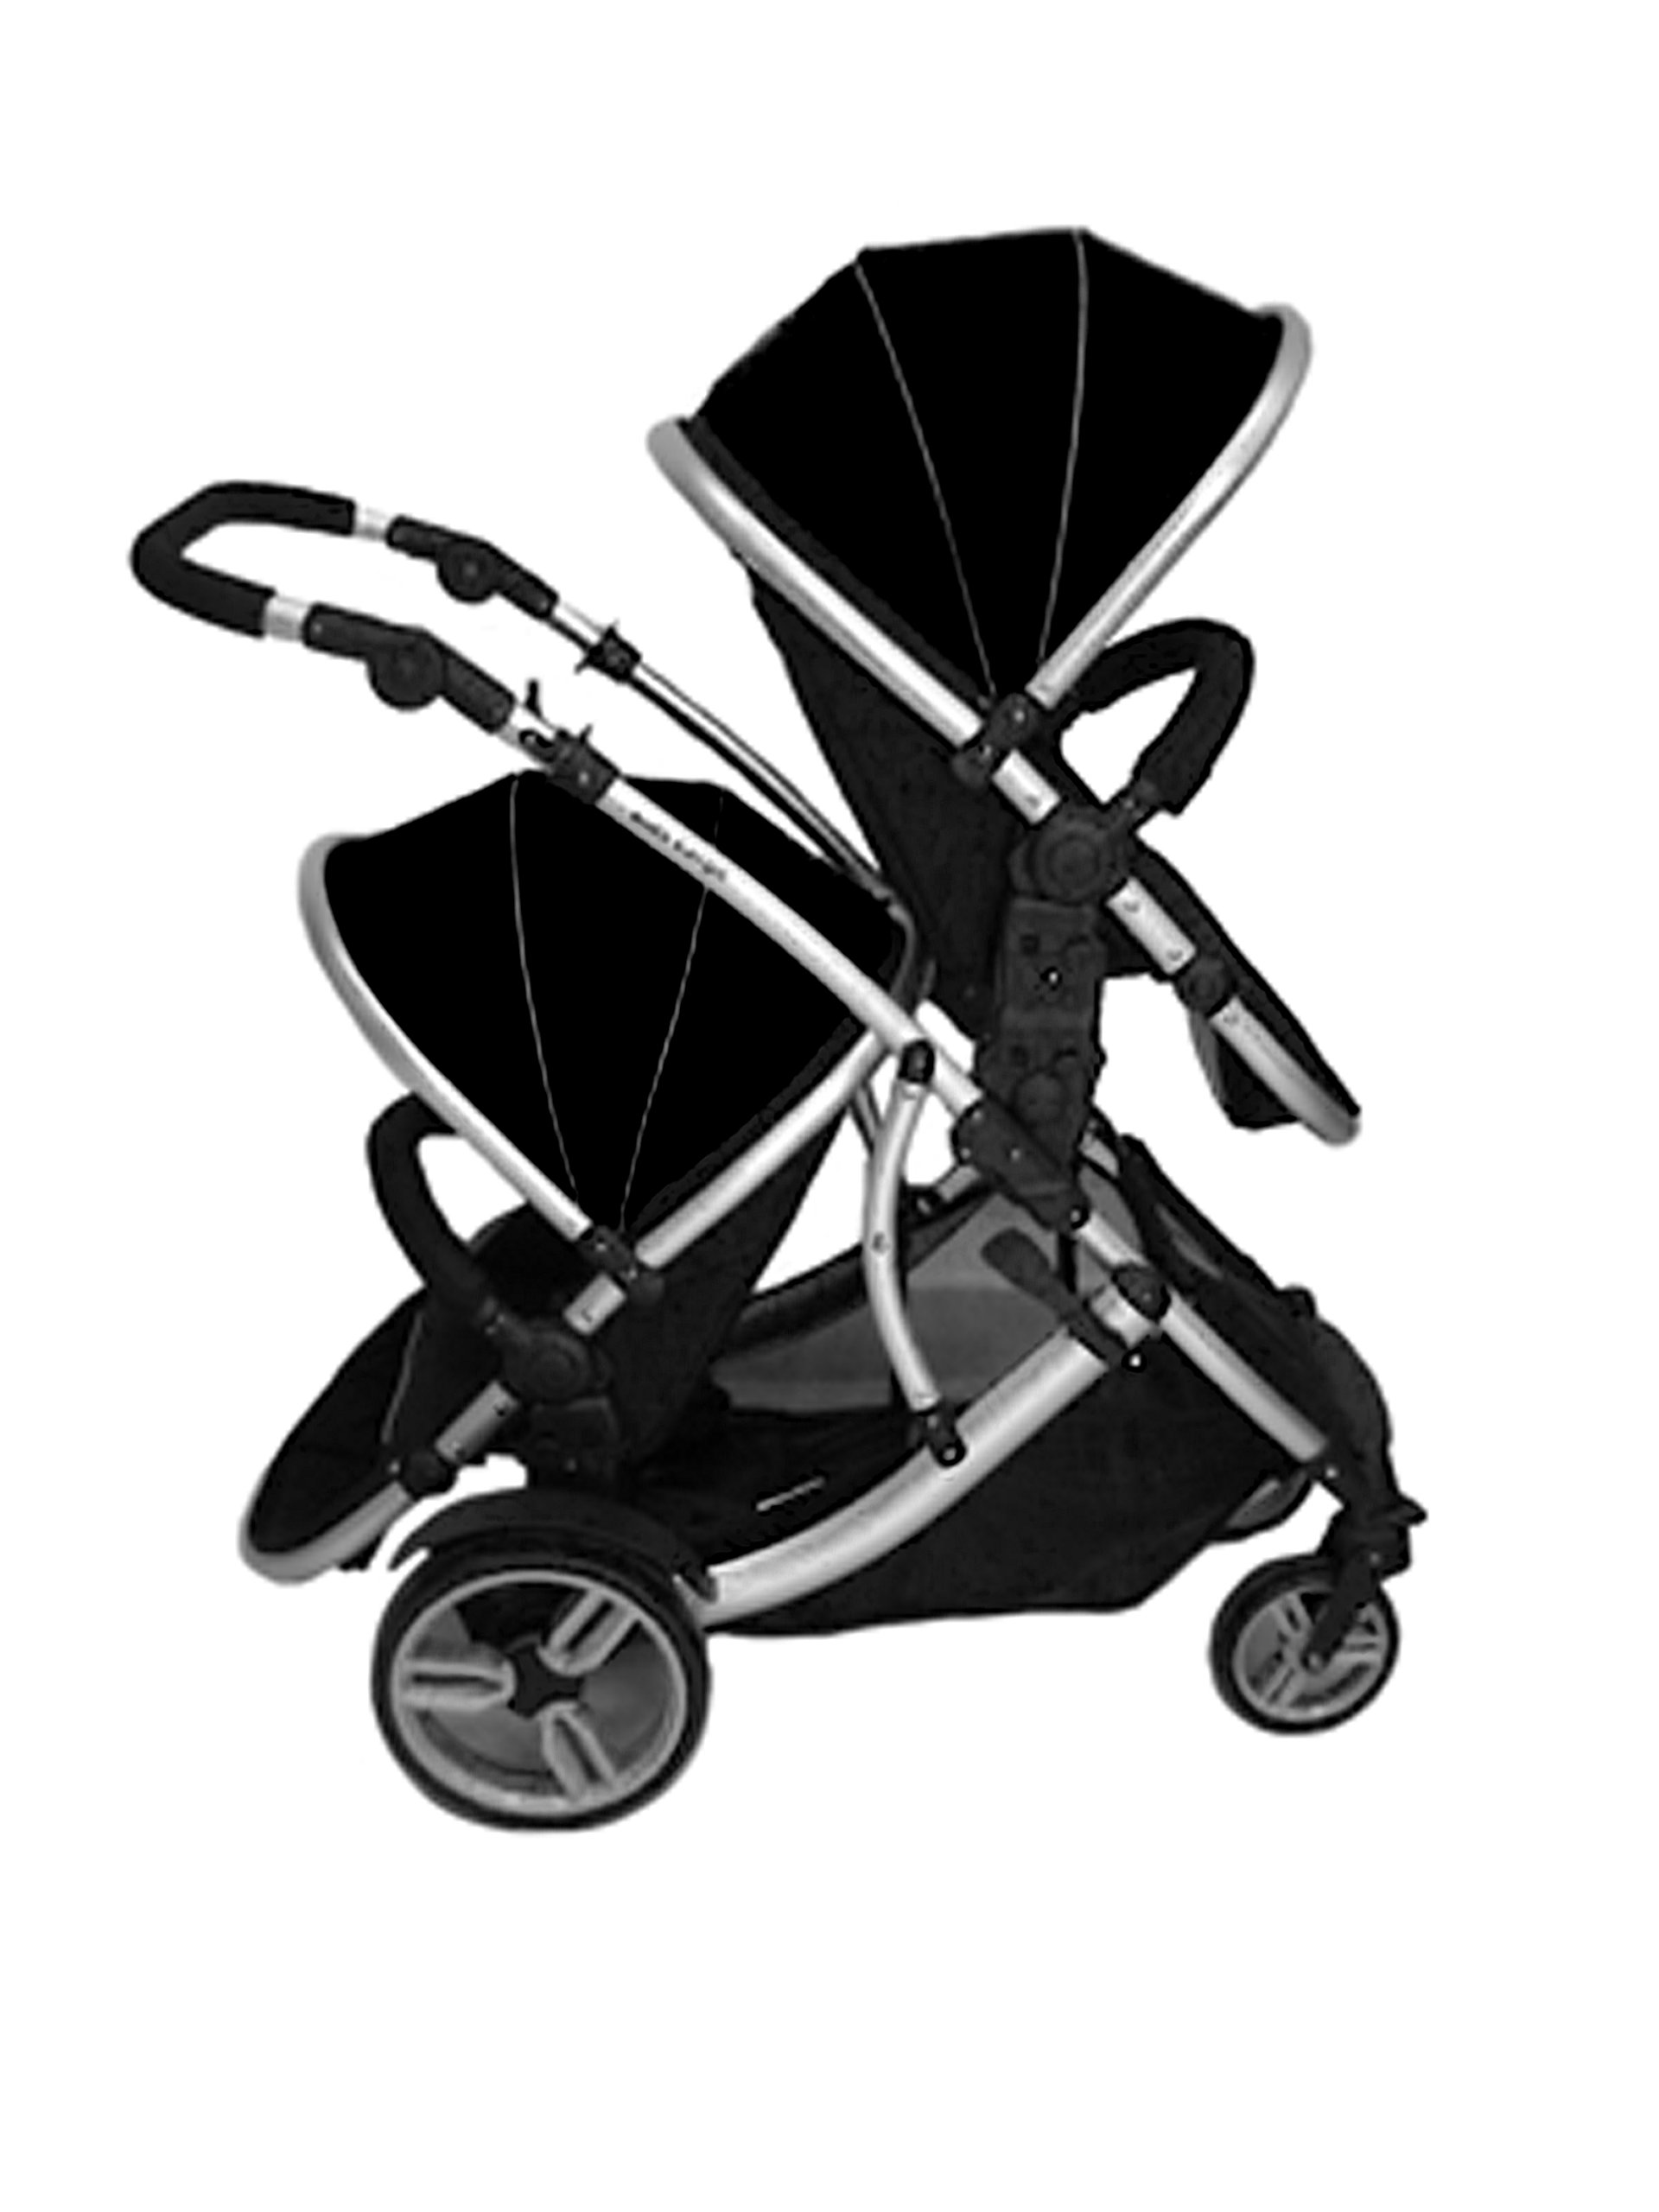 Duellette 21 BS combi Double Pushchair Twin Tandem complete carrycot/converts to seat unit. Free rain covers and 2 free Black footmuffs. Midnight Black by Kids Kargo Kids Kargo Demo video please see link https://www.youtube.com/watch?v=5L8eKWGqoso Various seat positions. Accommodates 1 or 2 car seats Carrycot converts to seat unit incl mattress. Toddler seat from 6 months 7